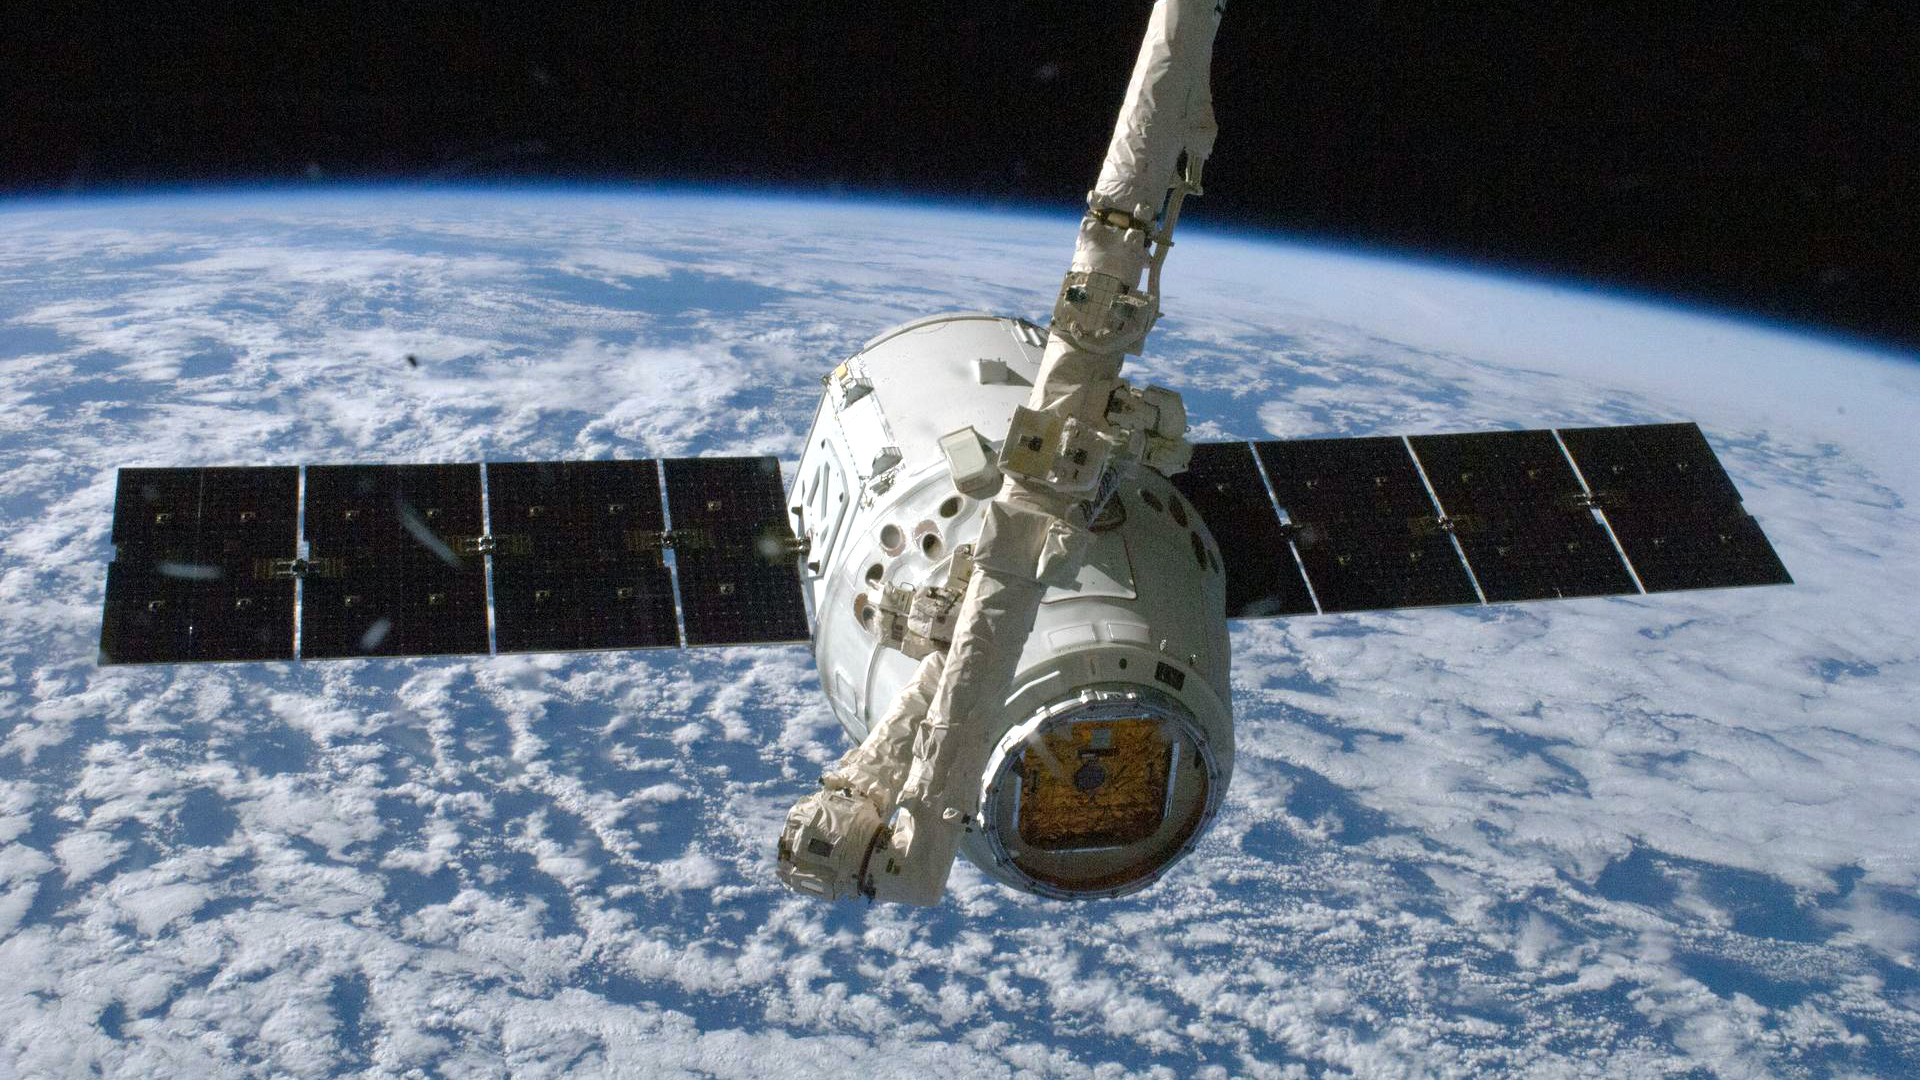 SpaceX launches a floating 'AI brain' to the ISS